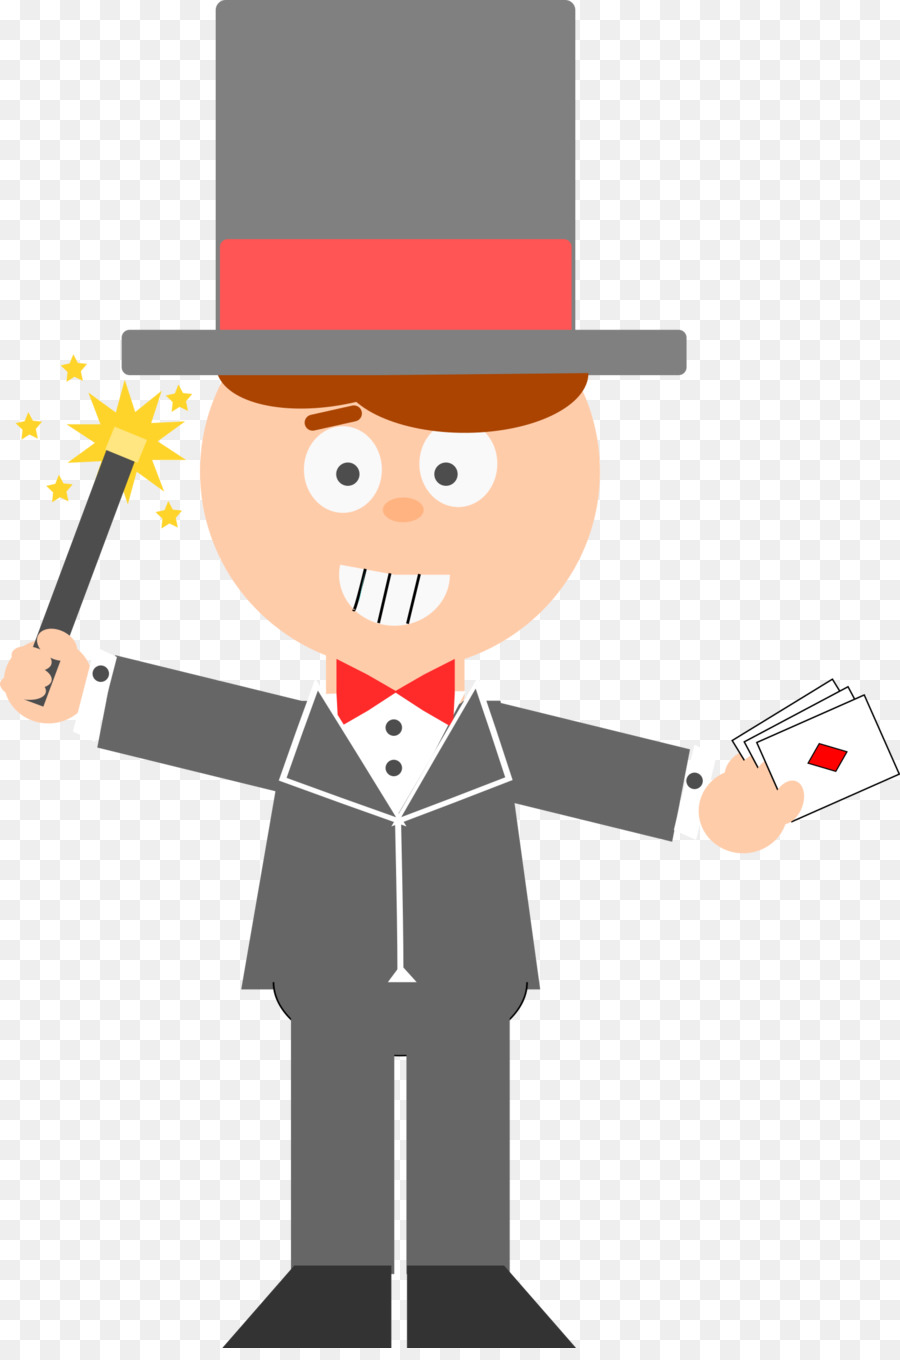 Background png download free. Magician clipart magician card